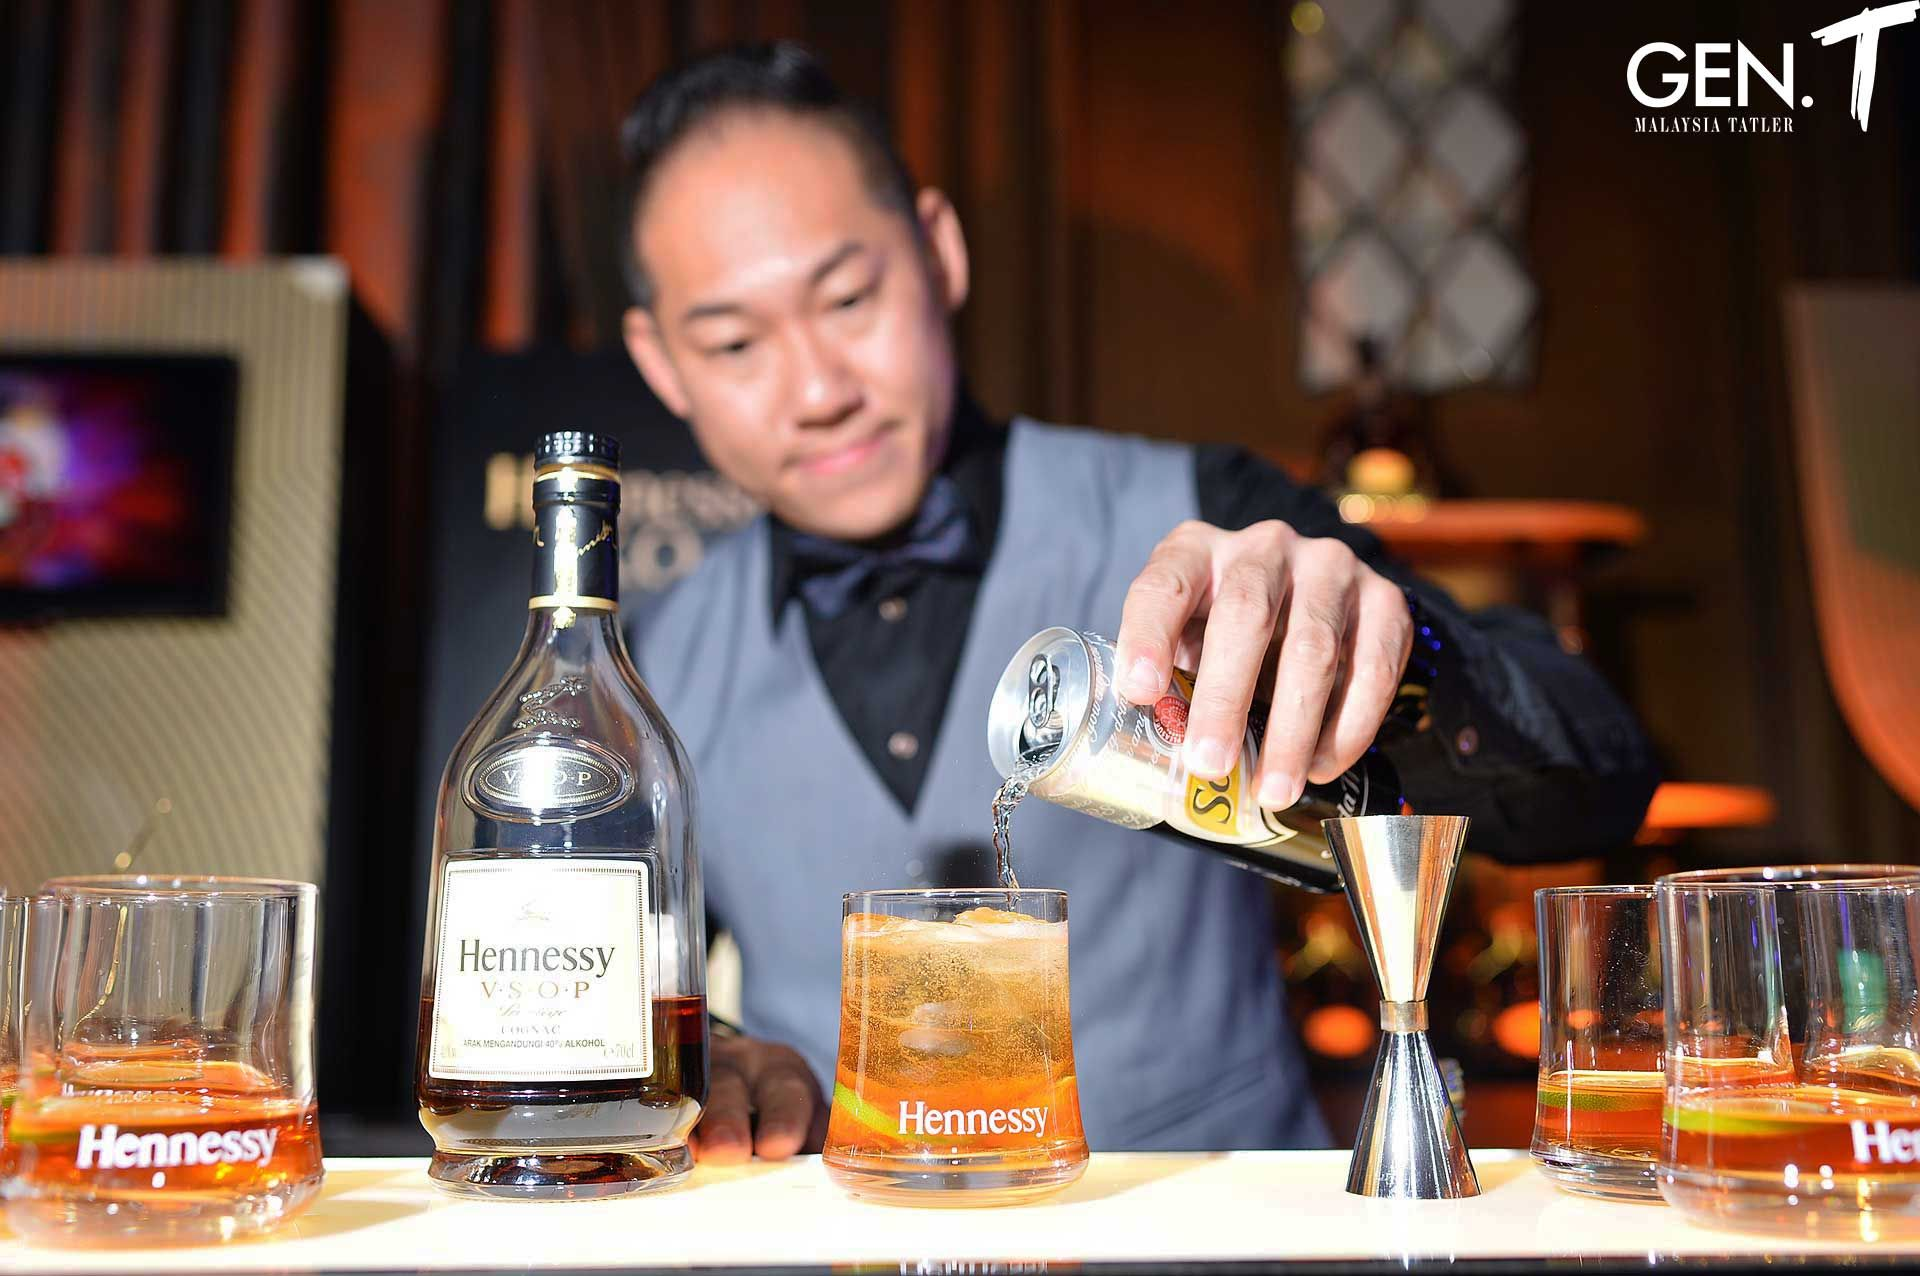 Henry Tan mixing up Hennessy cocktails for the night